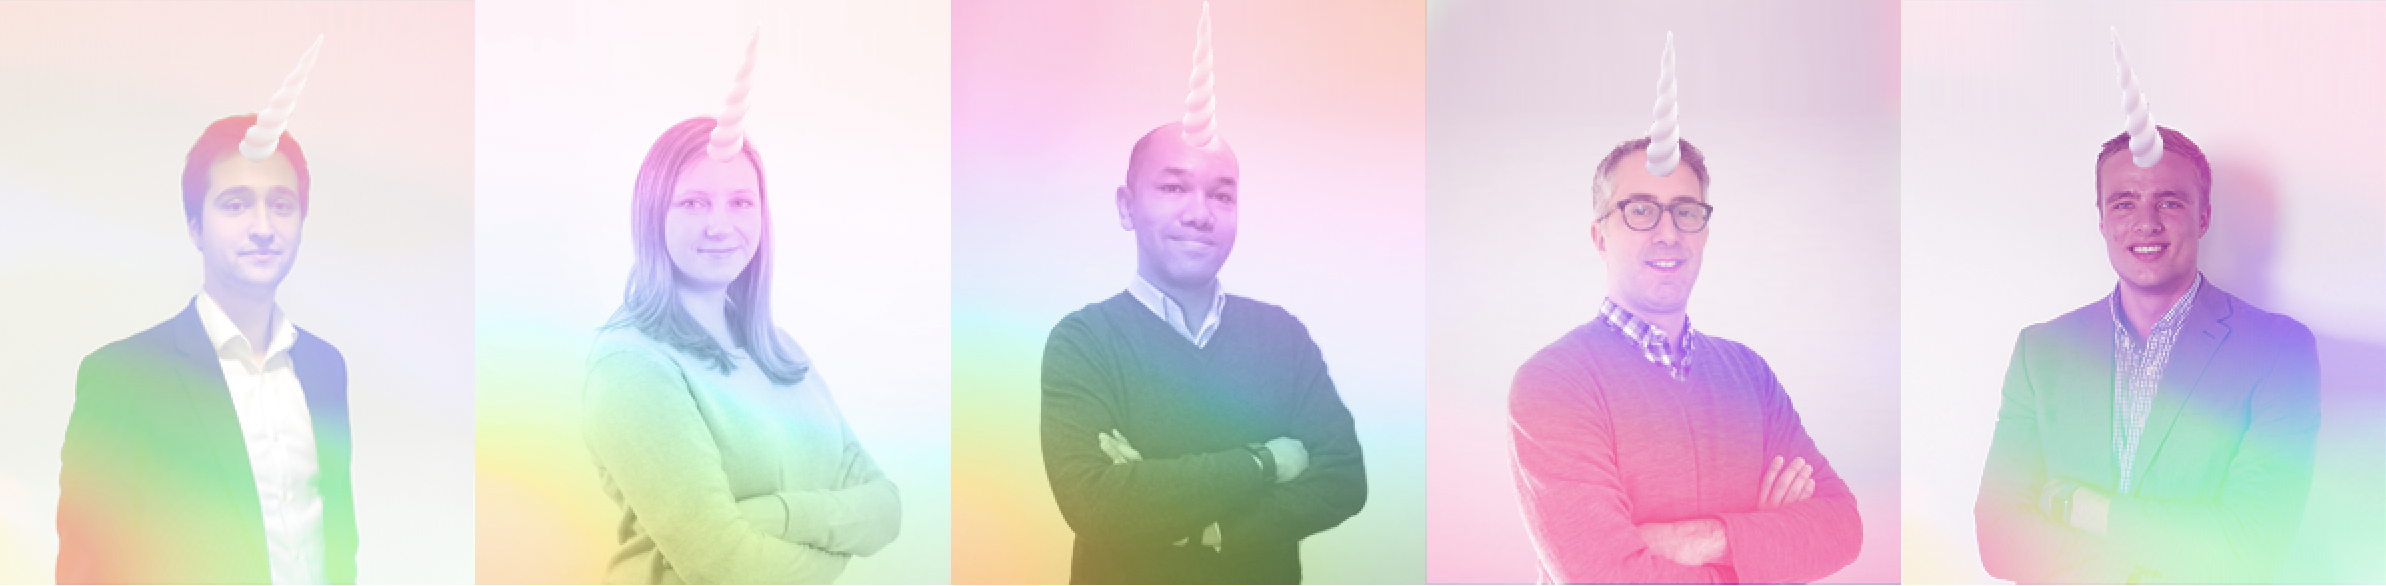 unicorn data scientists